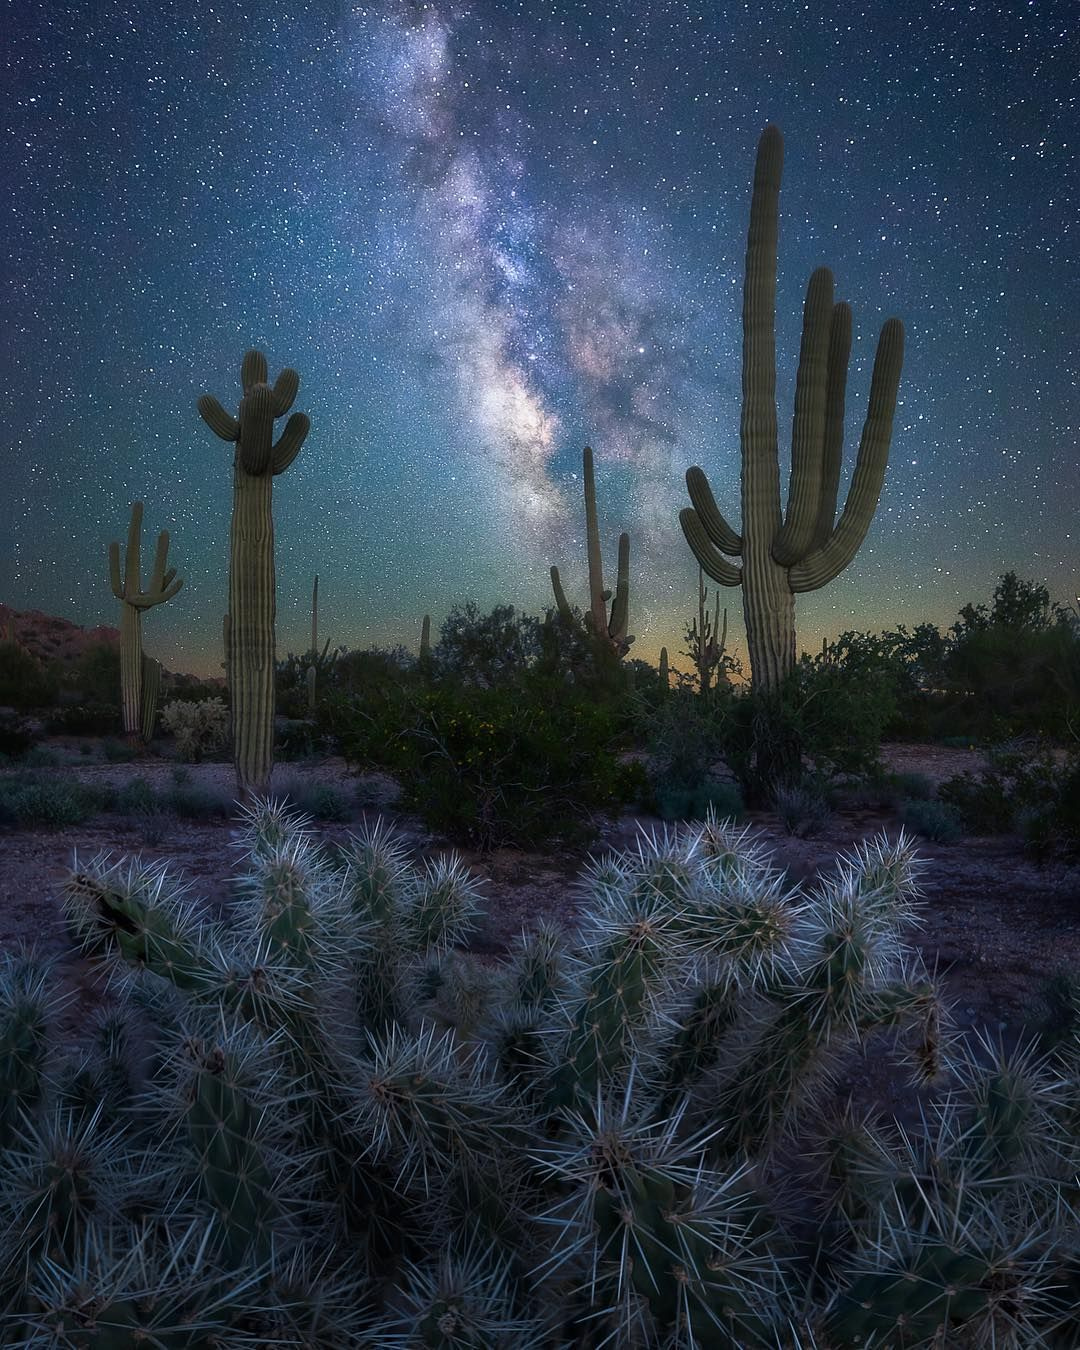 Brandon Erdman On Instagram Day Turns To Night And The Desert Becomes Magic Sonoran Desert Night Sky Photography Travel Photography Nature